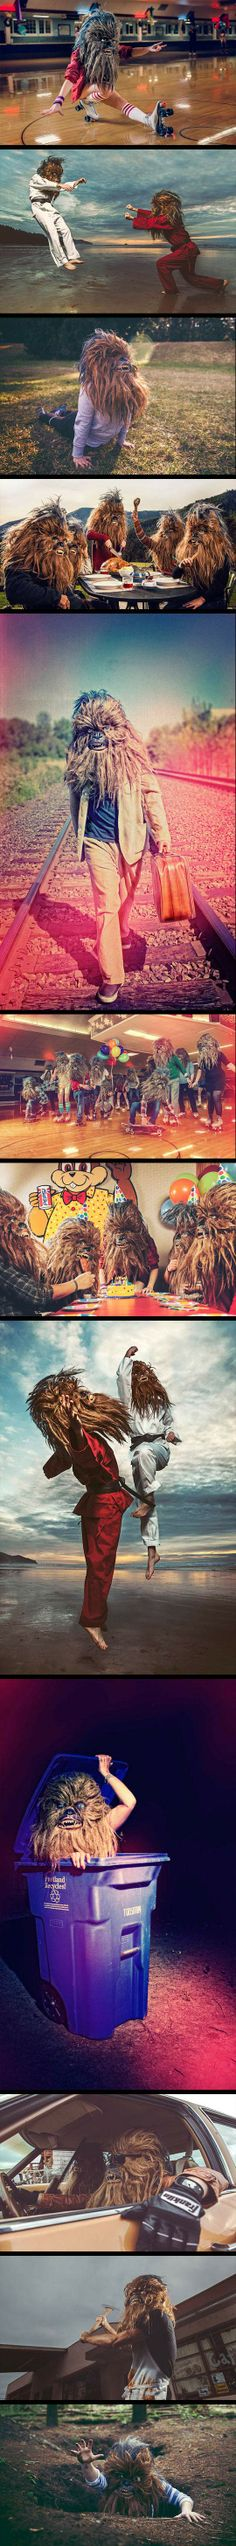 Funny pictures about The everyday life of Wookiees. Oh, and cool pics about The everyday life of Wookiees. Also, The everyday life of Wookiees. Best Funny Images, Funny Photos, Super Cool Stuff, The Phantom Menace, Strange Photos, Weird Pictures, Chewbacca, Star Wars Episodes, Nerd Geek